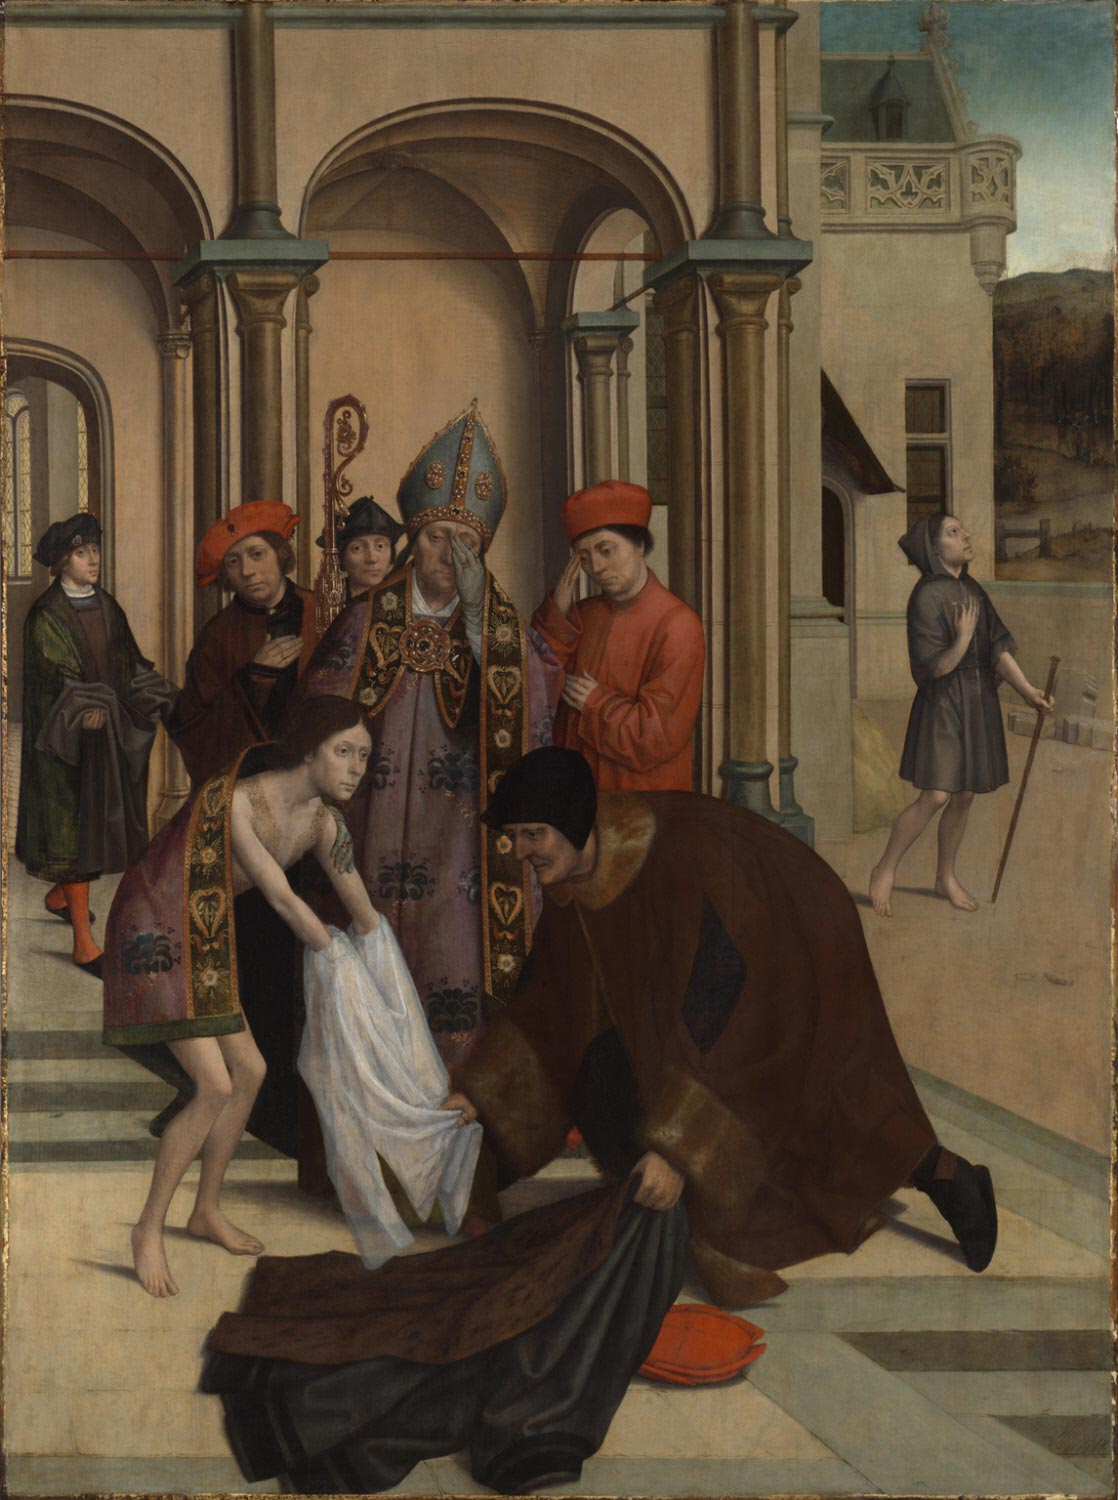 Saint Francis Renouncing the World for the Cloister